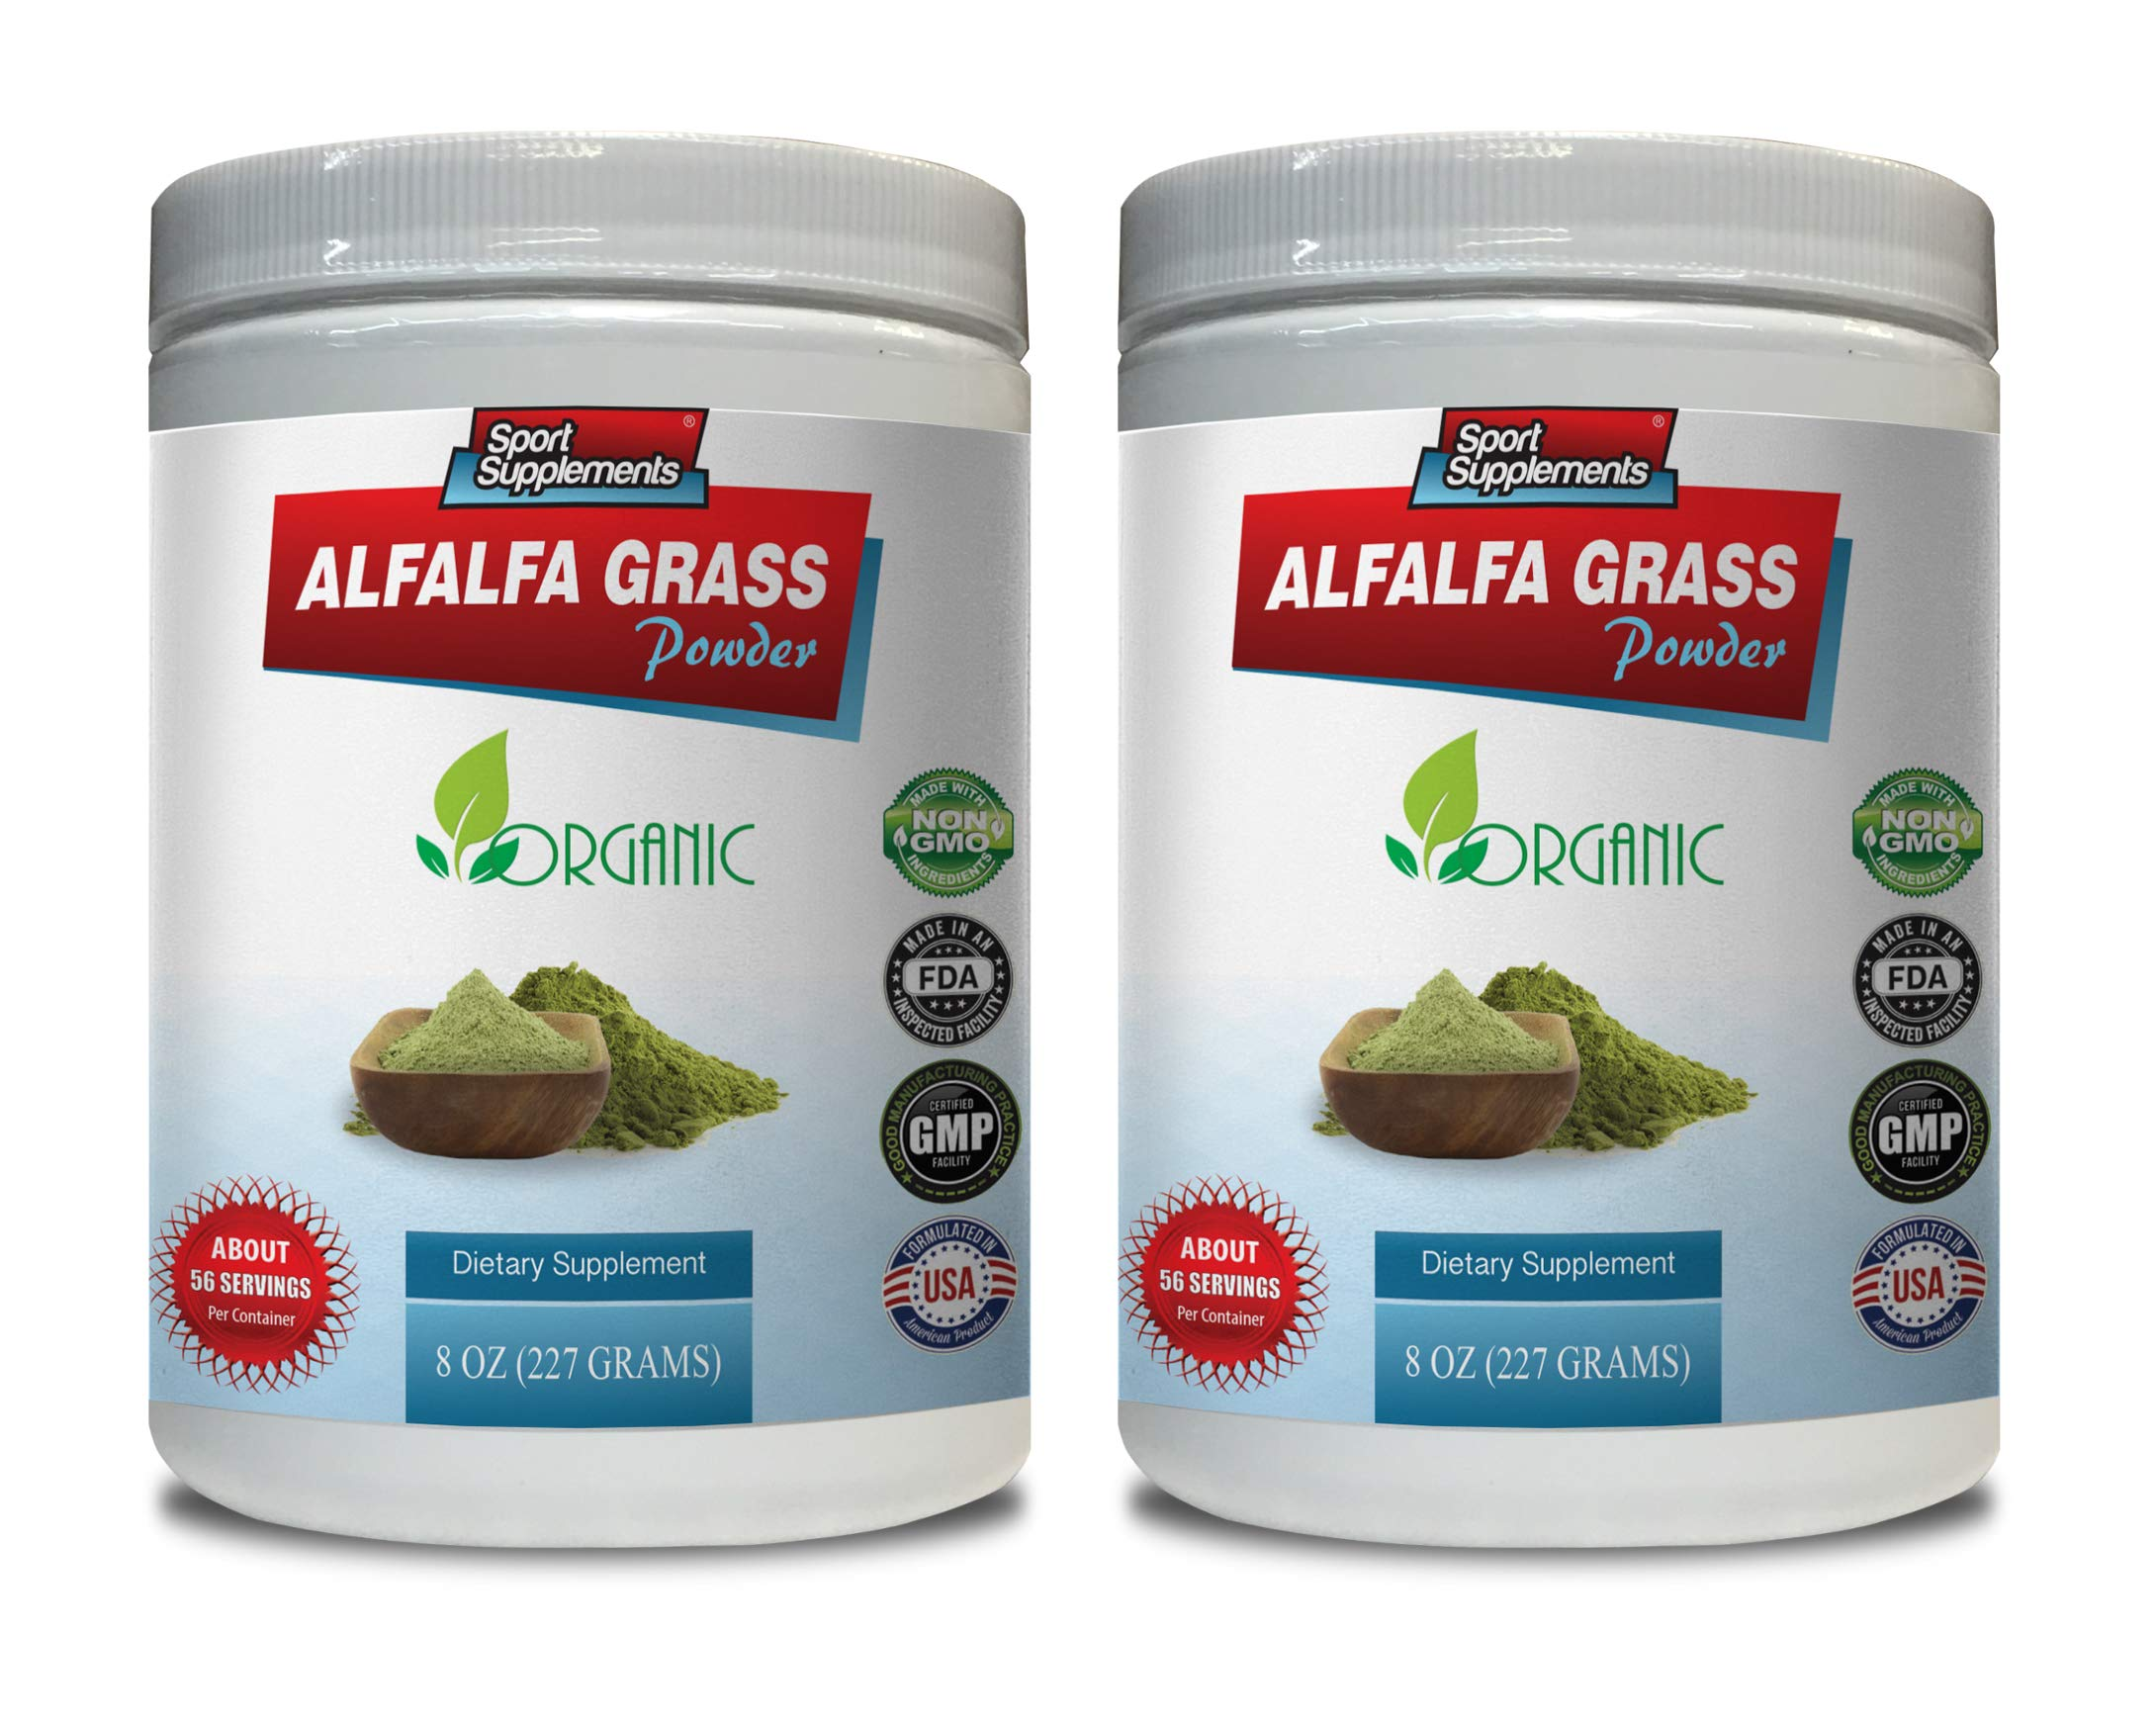 Blood Pressure Supplement Natural - Alfalfa Grass Powder - Organic Dietary Supplement - Alfalfa Leaf Vitamins - 2 Cans 16 OZ (112 Servings)